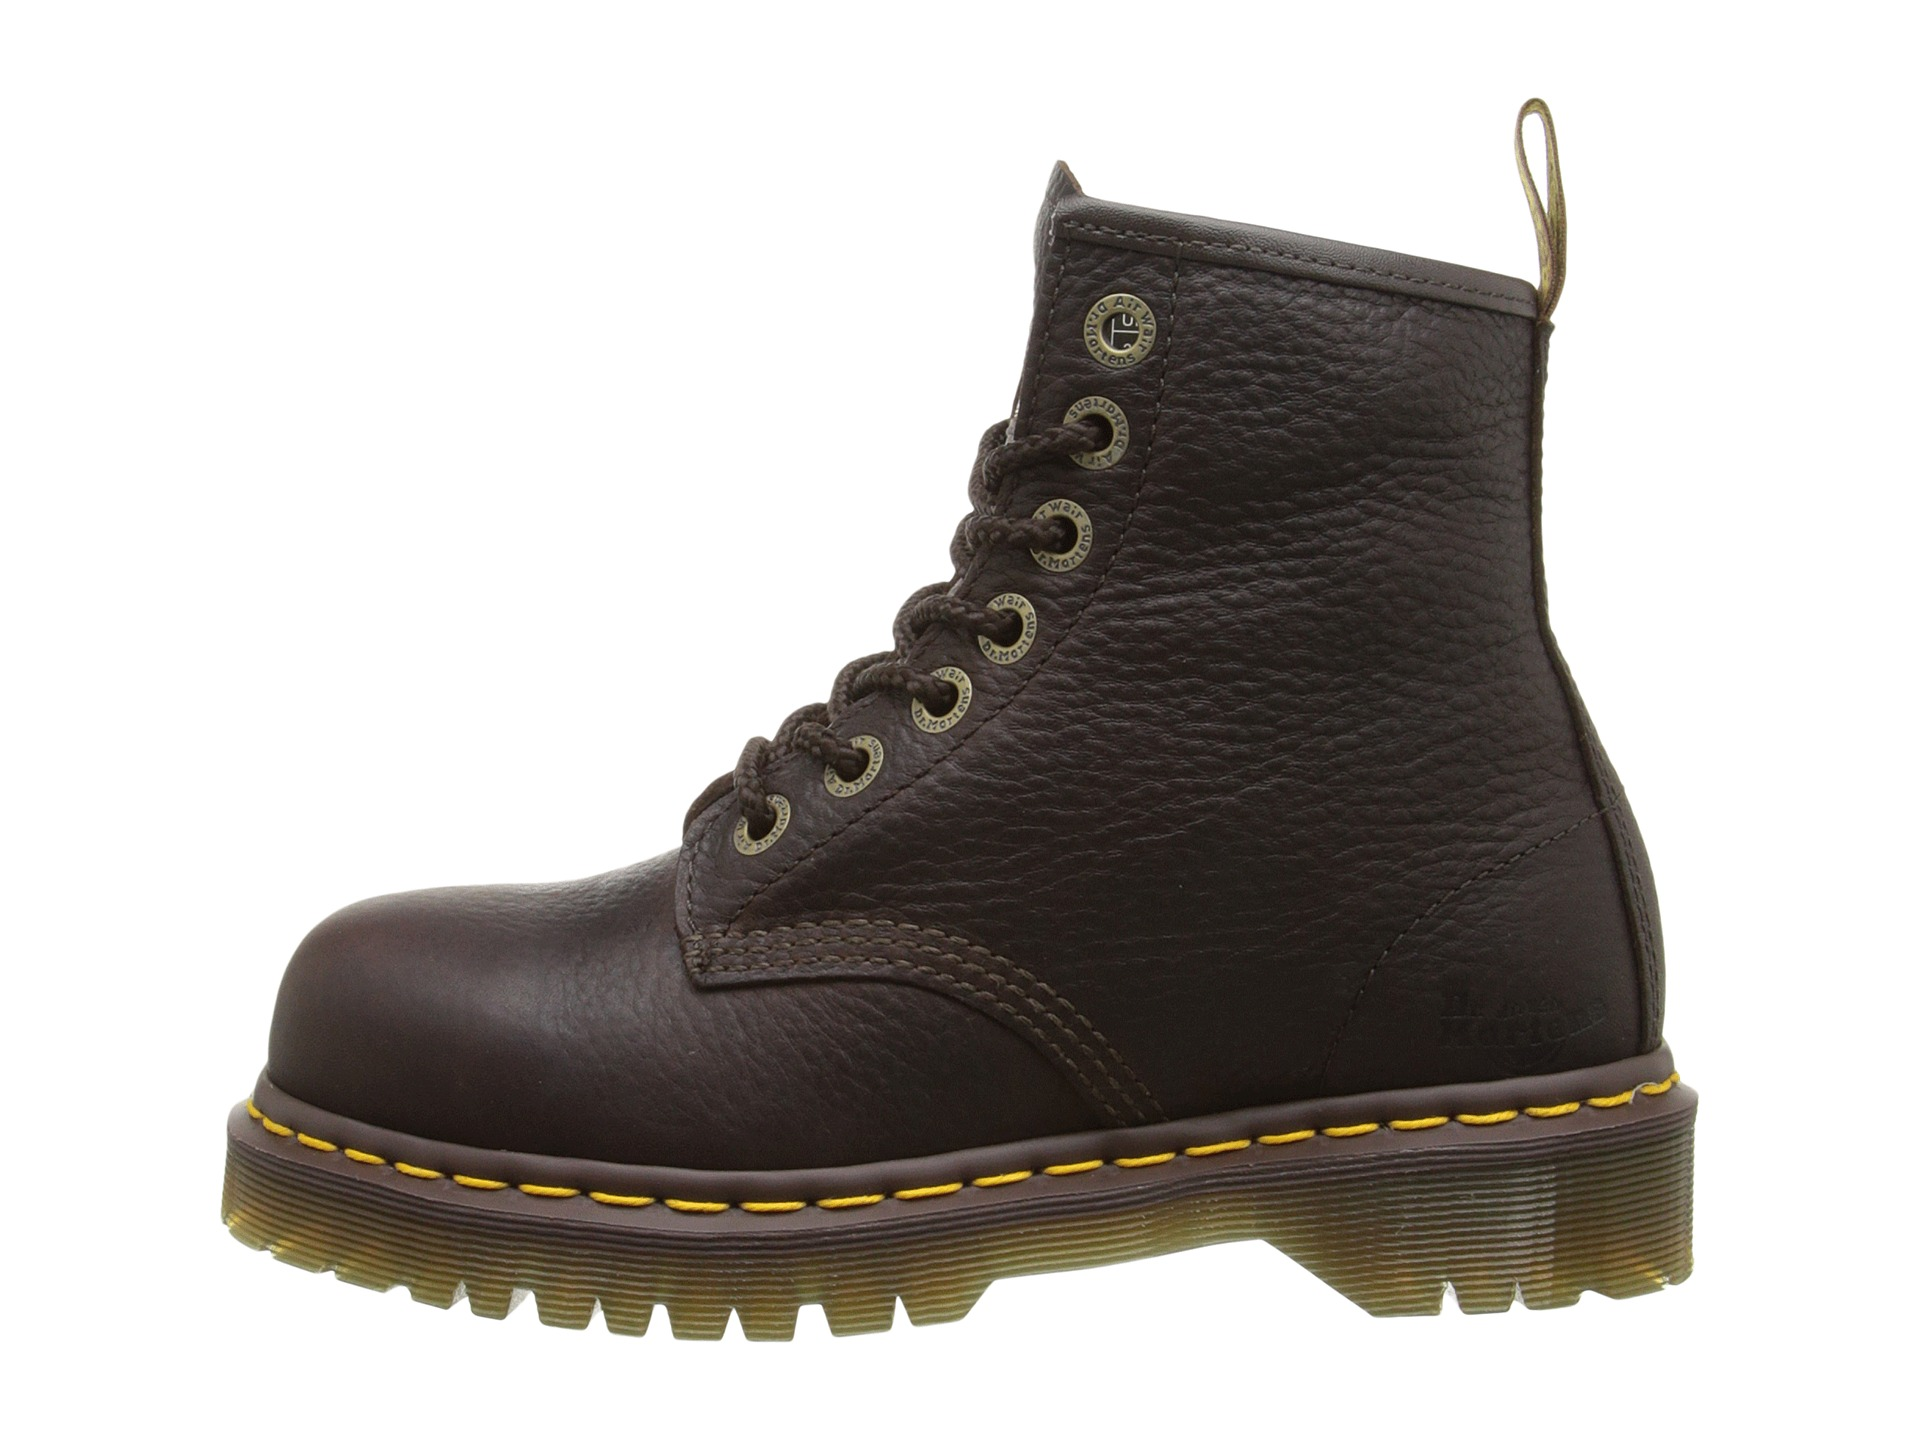 Dr. Martens Work 7B10 ST 7 Eye Boot at Zappos.com